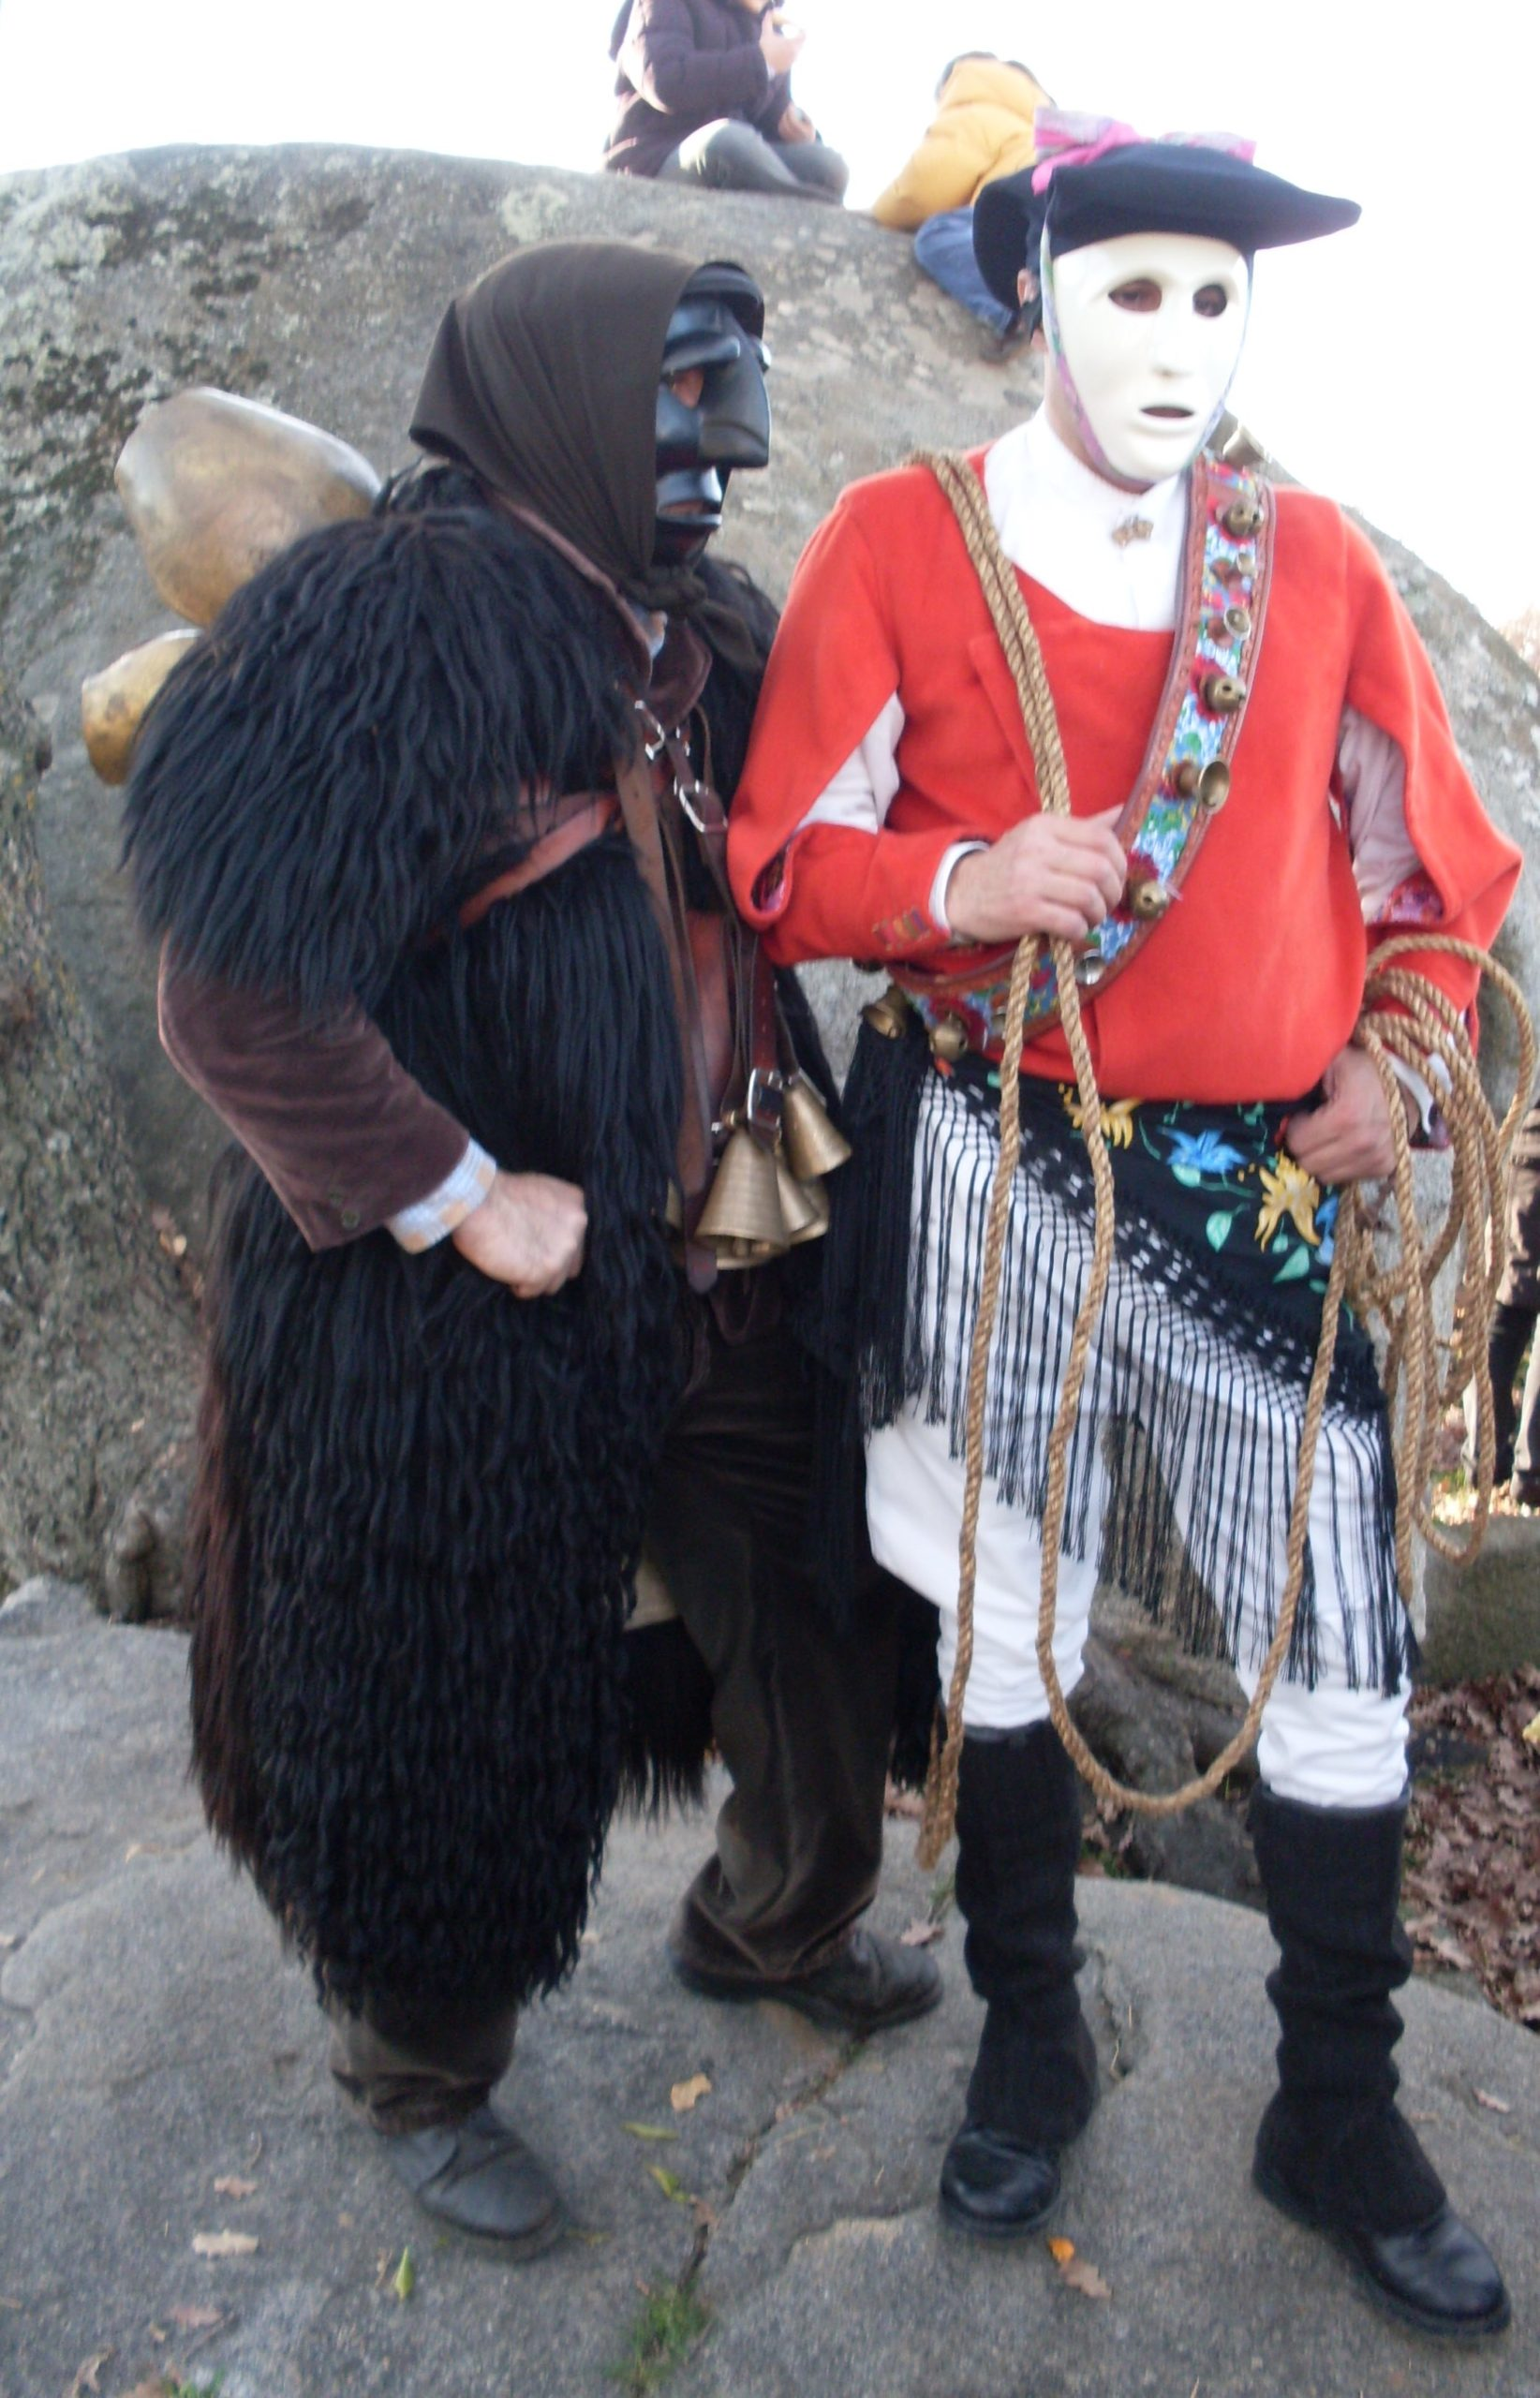 Mamuthones and Issohadores at the Carnival of Mamoiada in Sardinia